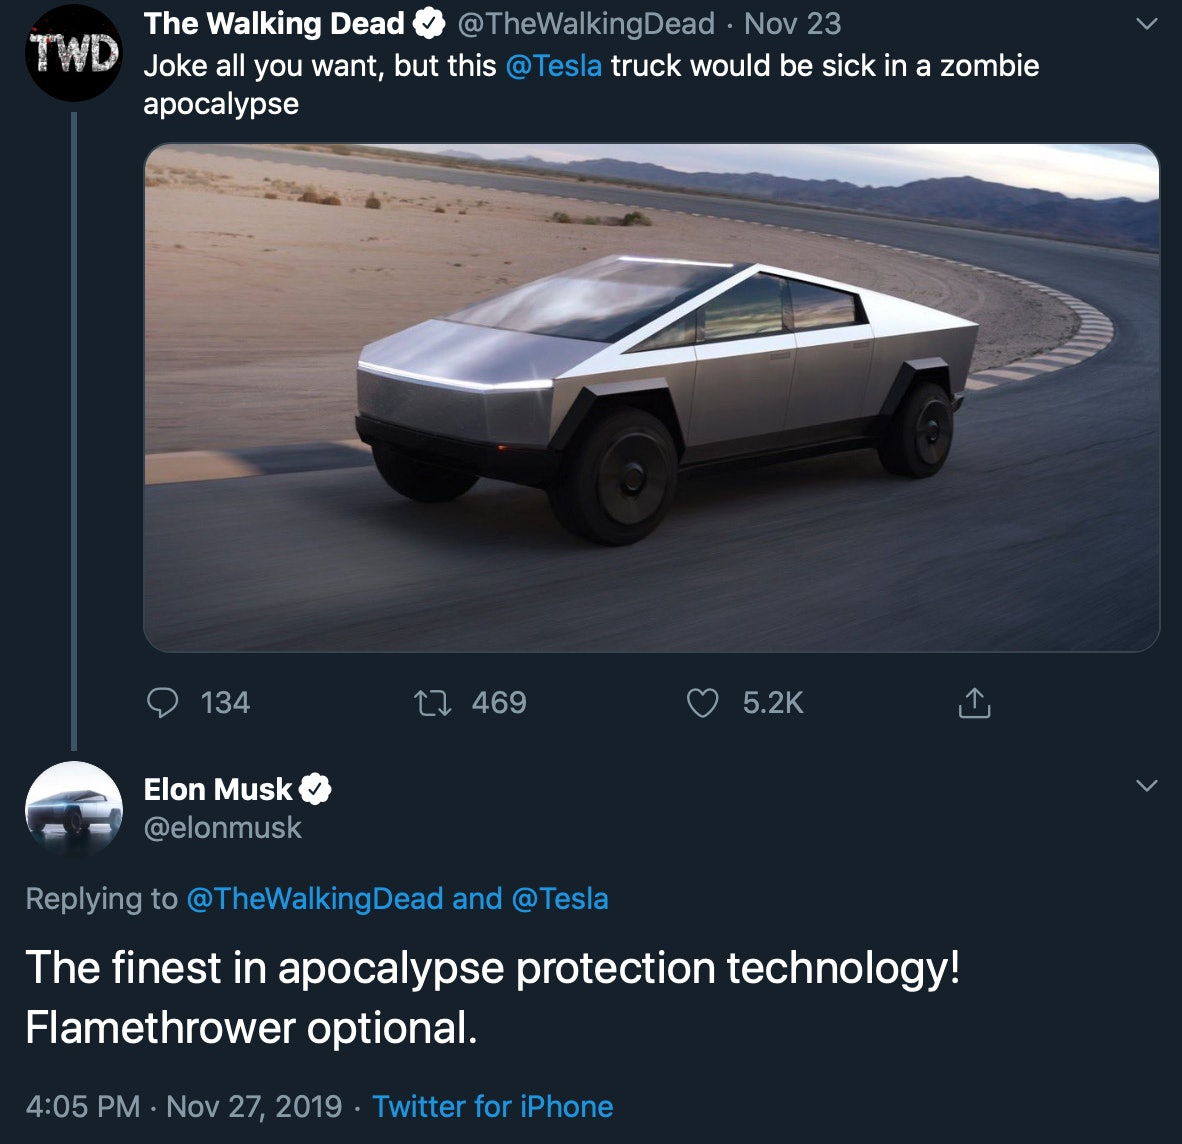 The Walking Dead comes out in favor of the Tesla Cybertruck.